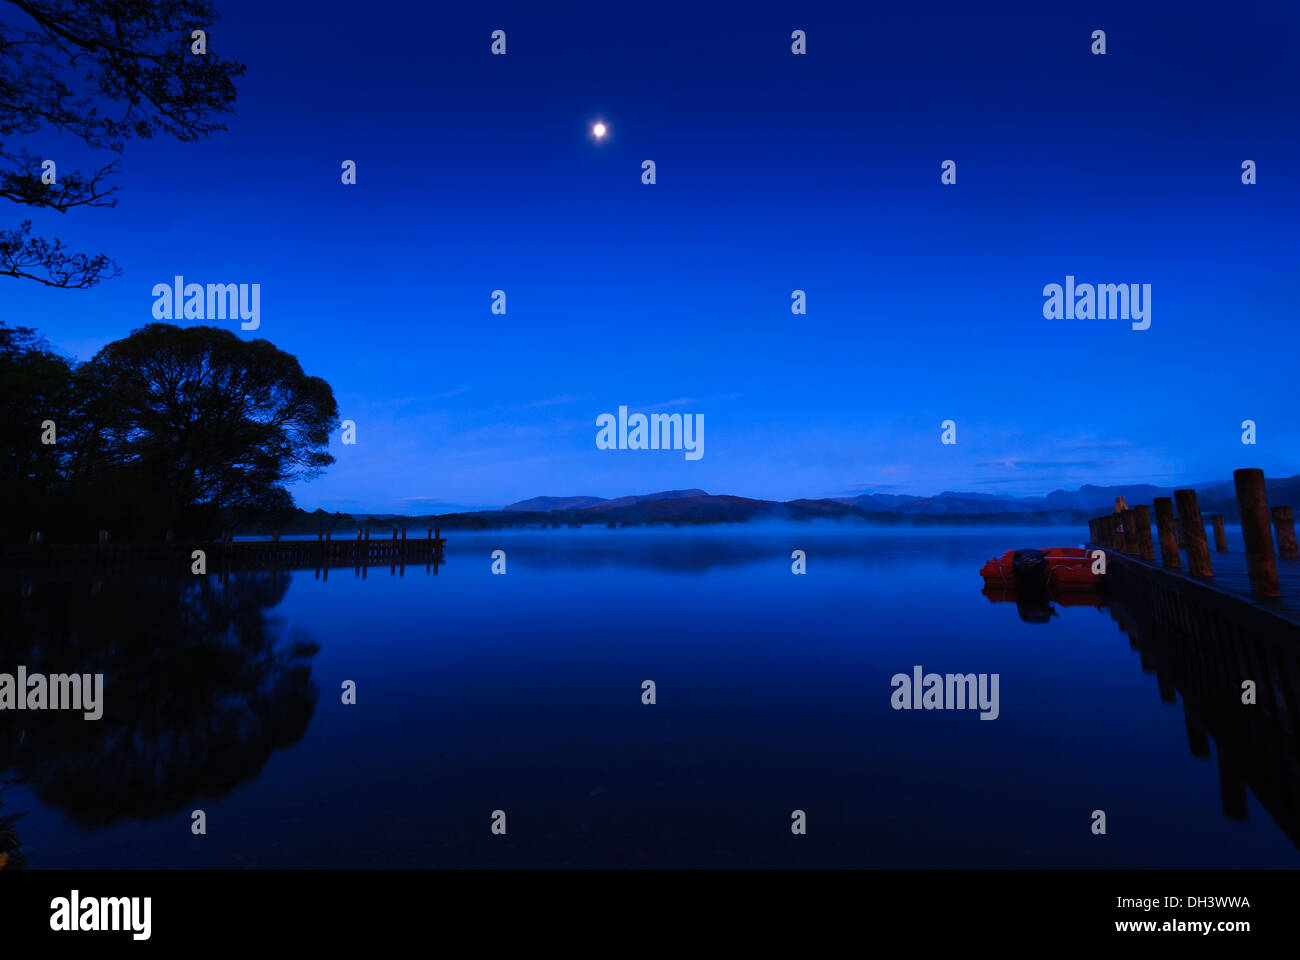 Very still waters on a moonlit shore of Lake Windermere In Cumbria before dawn with the moon in the picture and jetties. - Stock Image